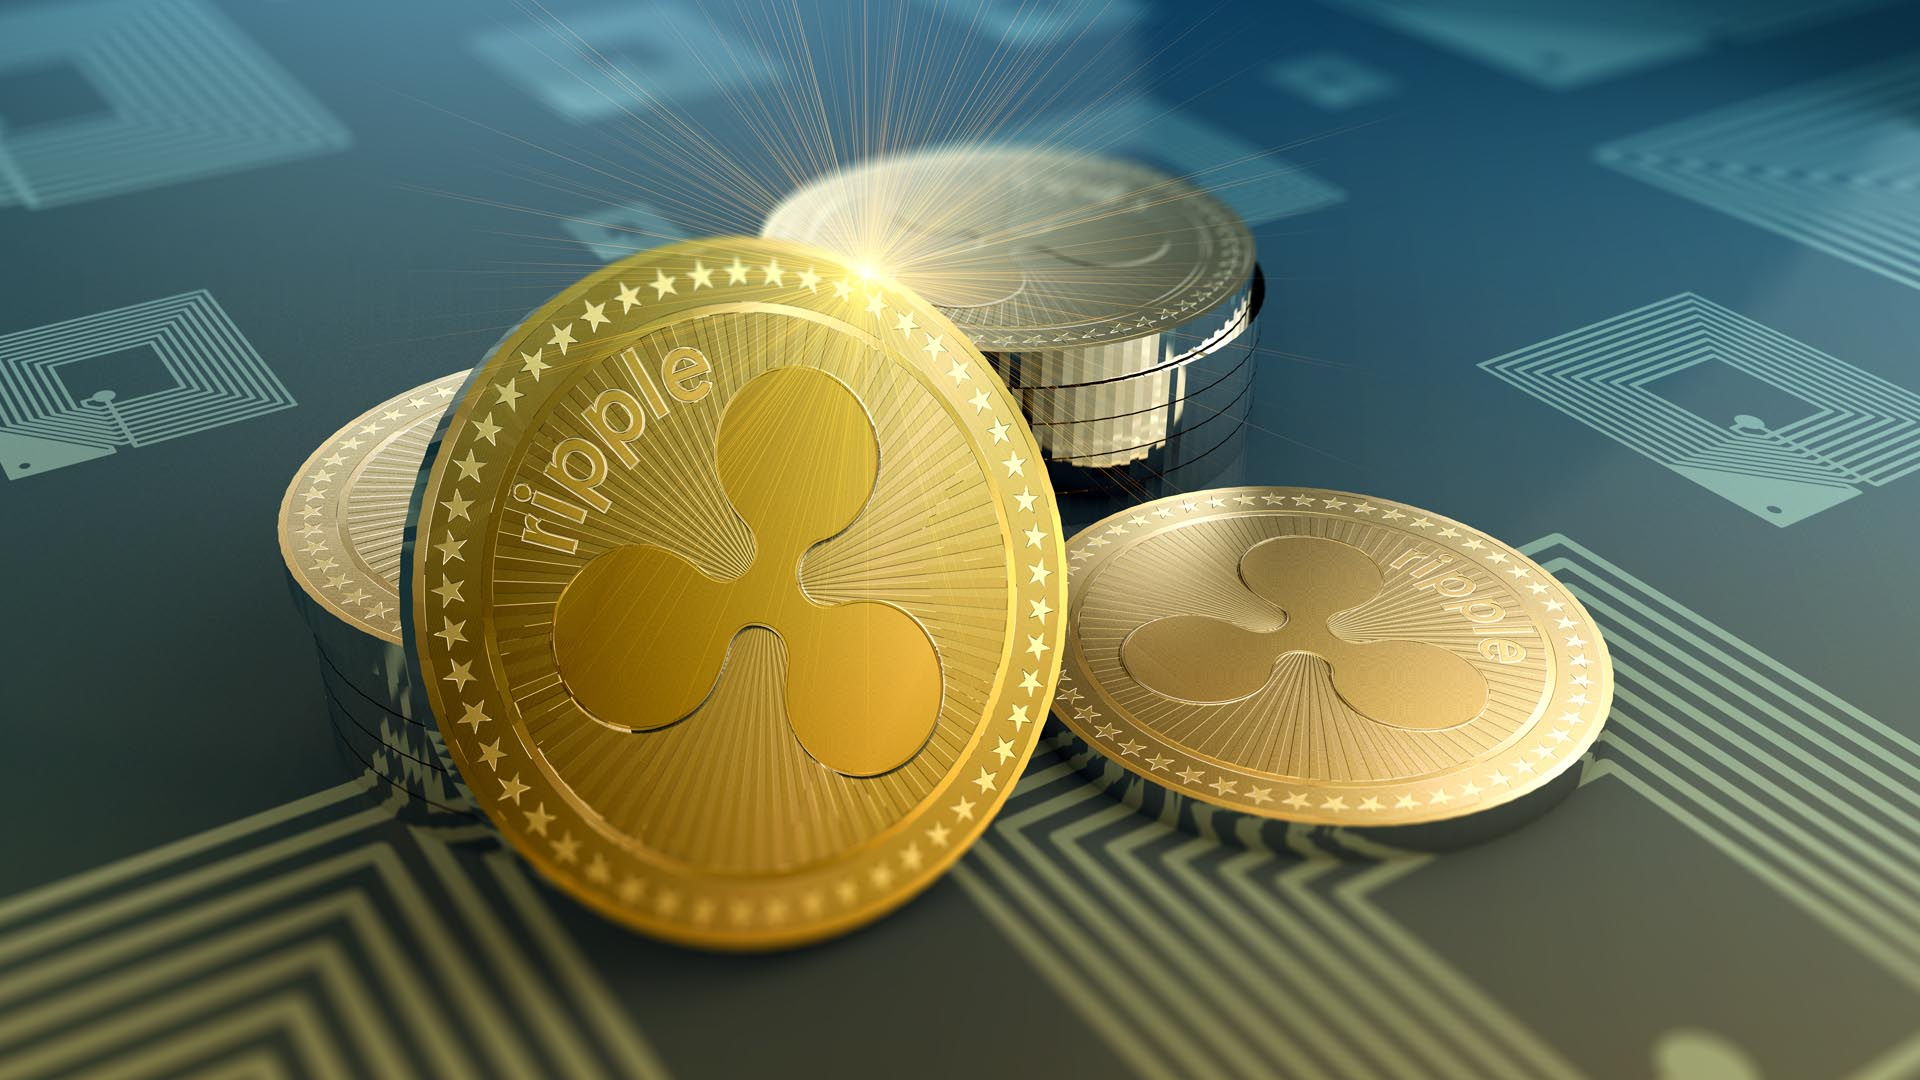 Ripple sues YouTube for reputation damage due to fraud